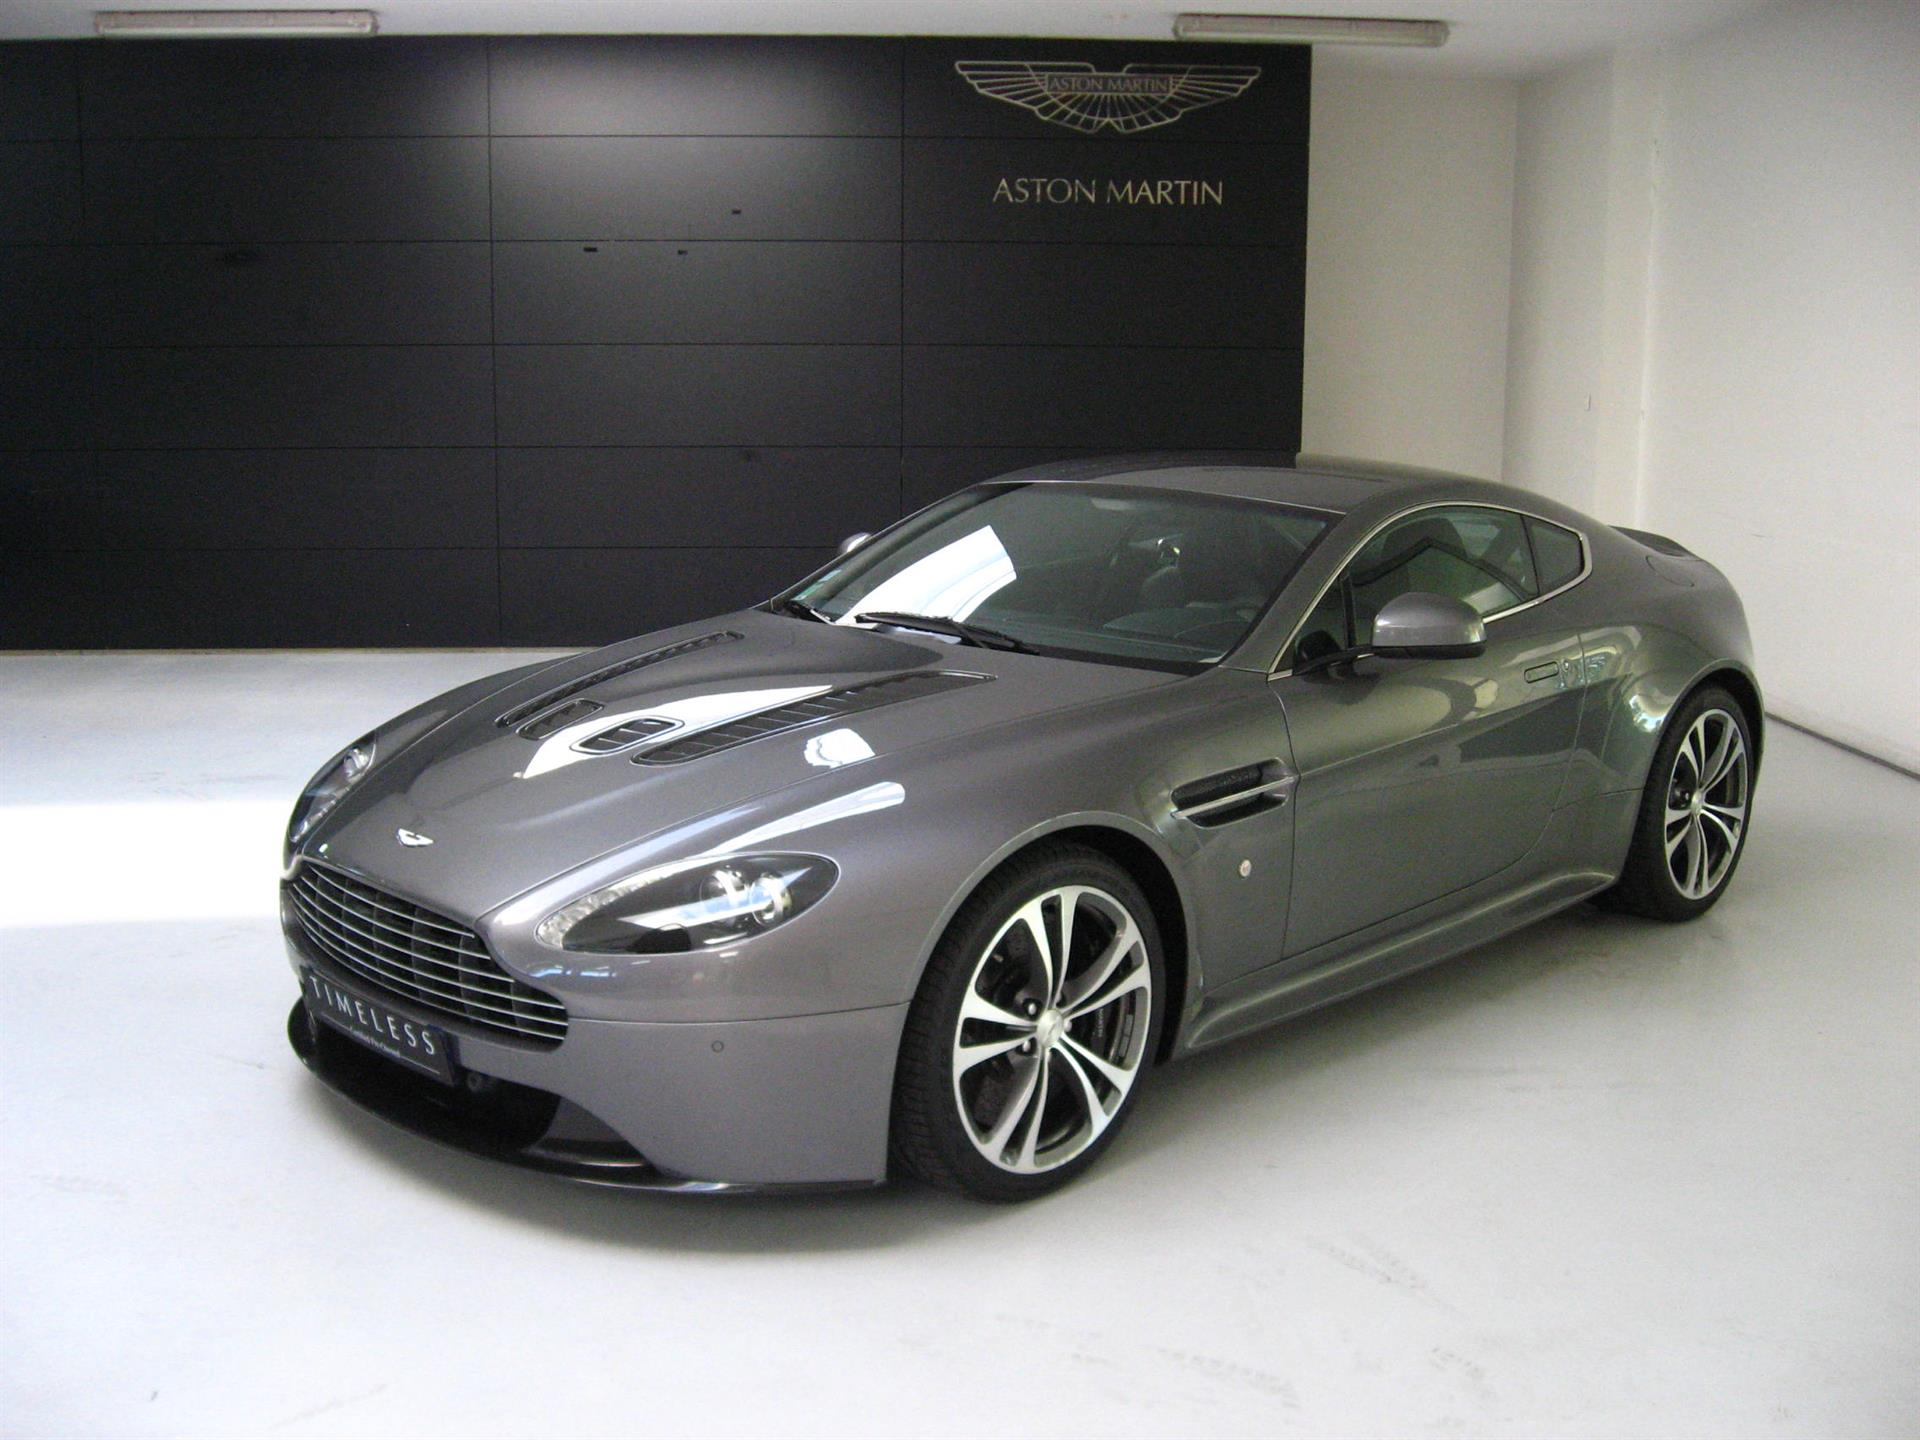 aston martin lagonda pre owned used aston martins car details v12 vantage coupe ar 330 qr. Black Bedroom Furniture Sets. Home Design Ideas